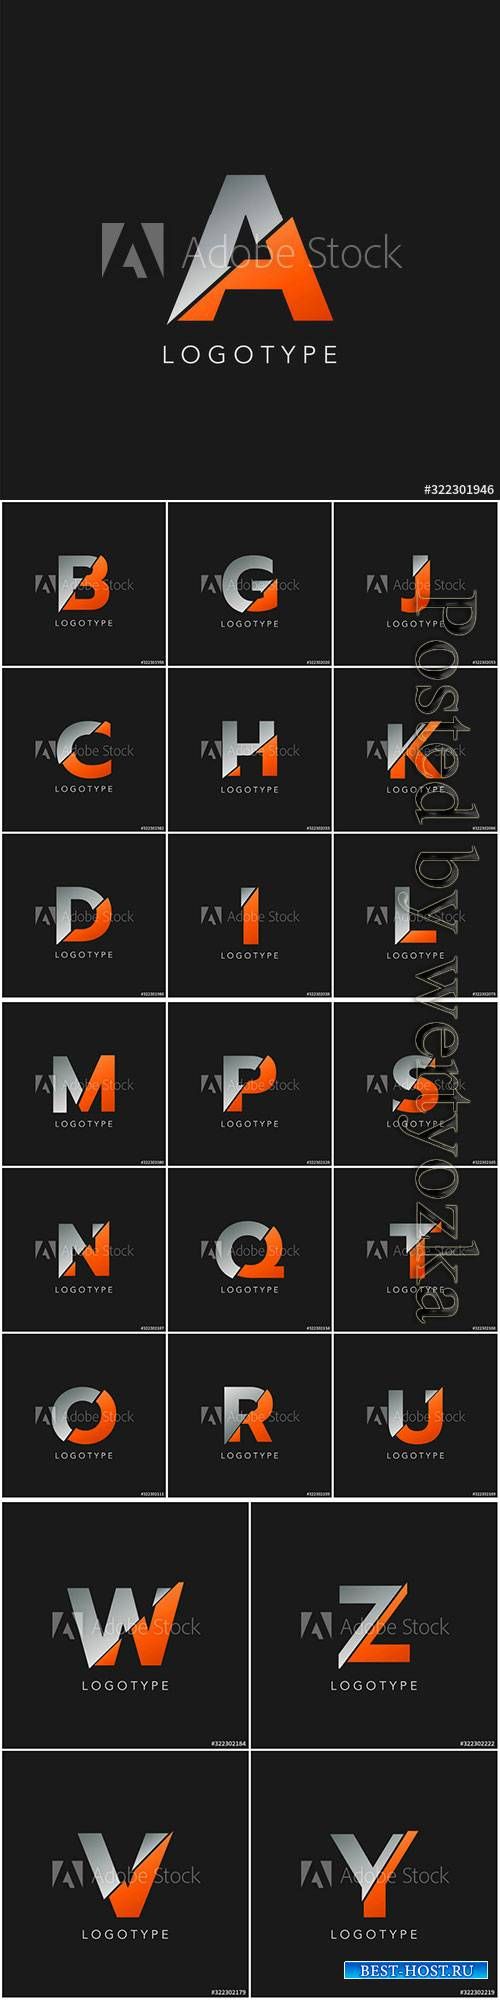 Abstract initial letter logo icon vector design concept